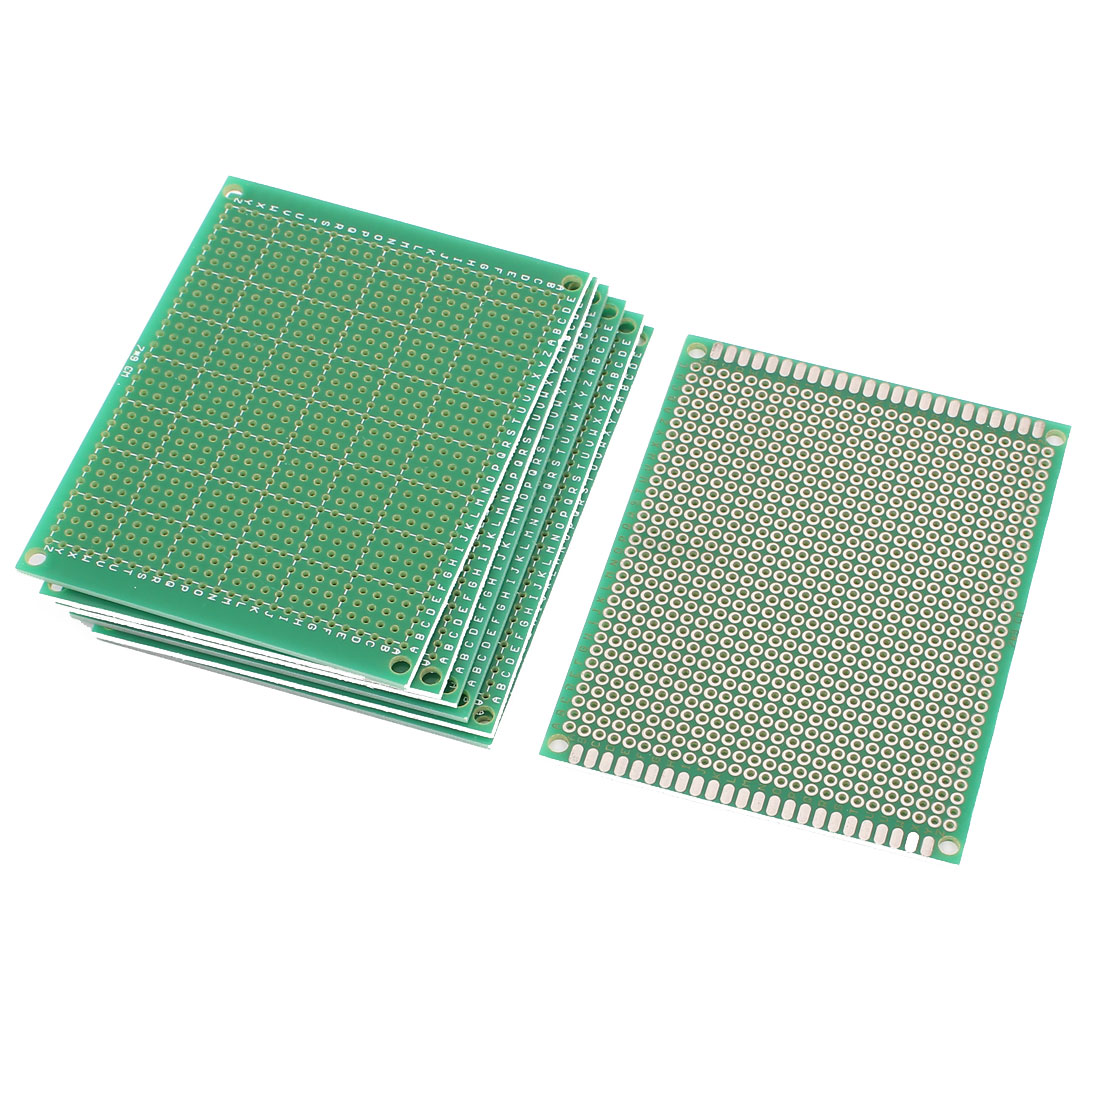 7 Pcs Single Sided Prototype Universal PCB Print Circuit Board 7 x 9CM Green